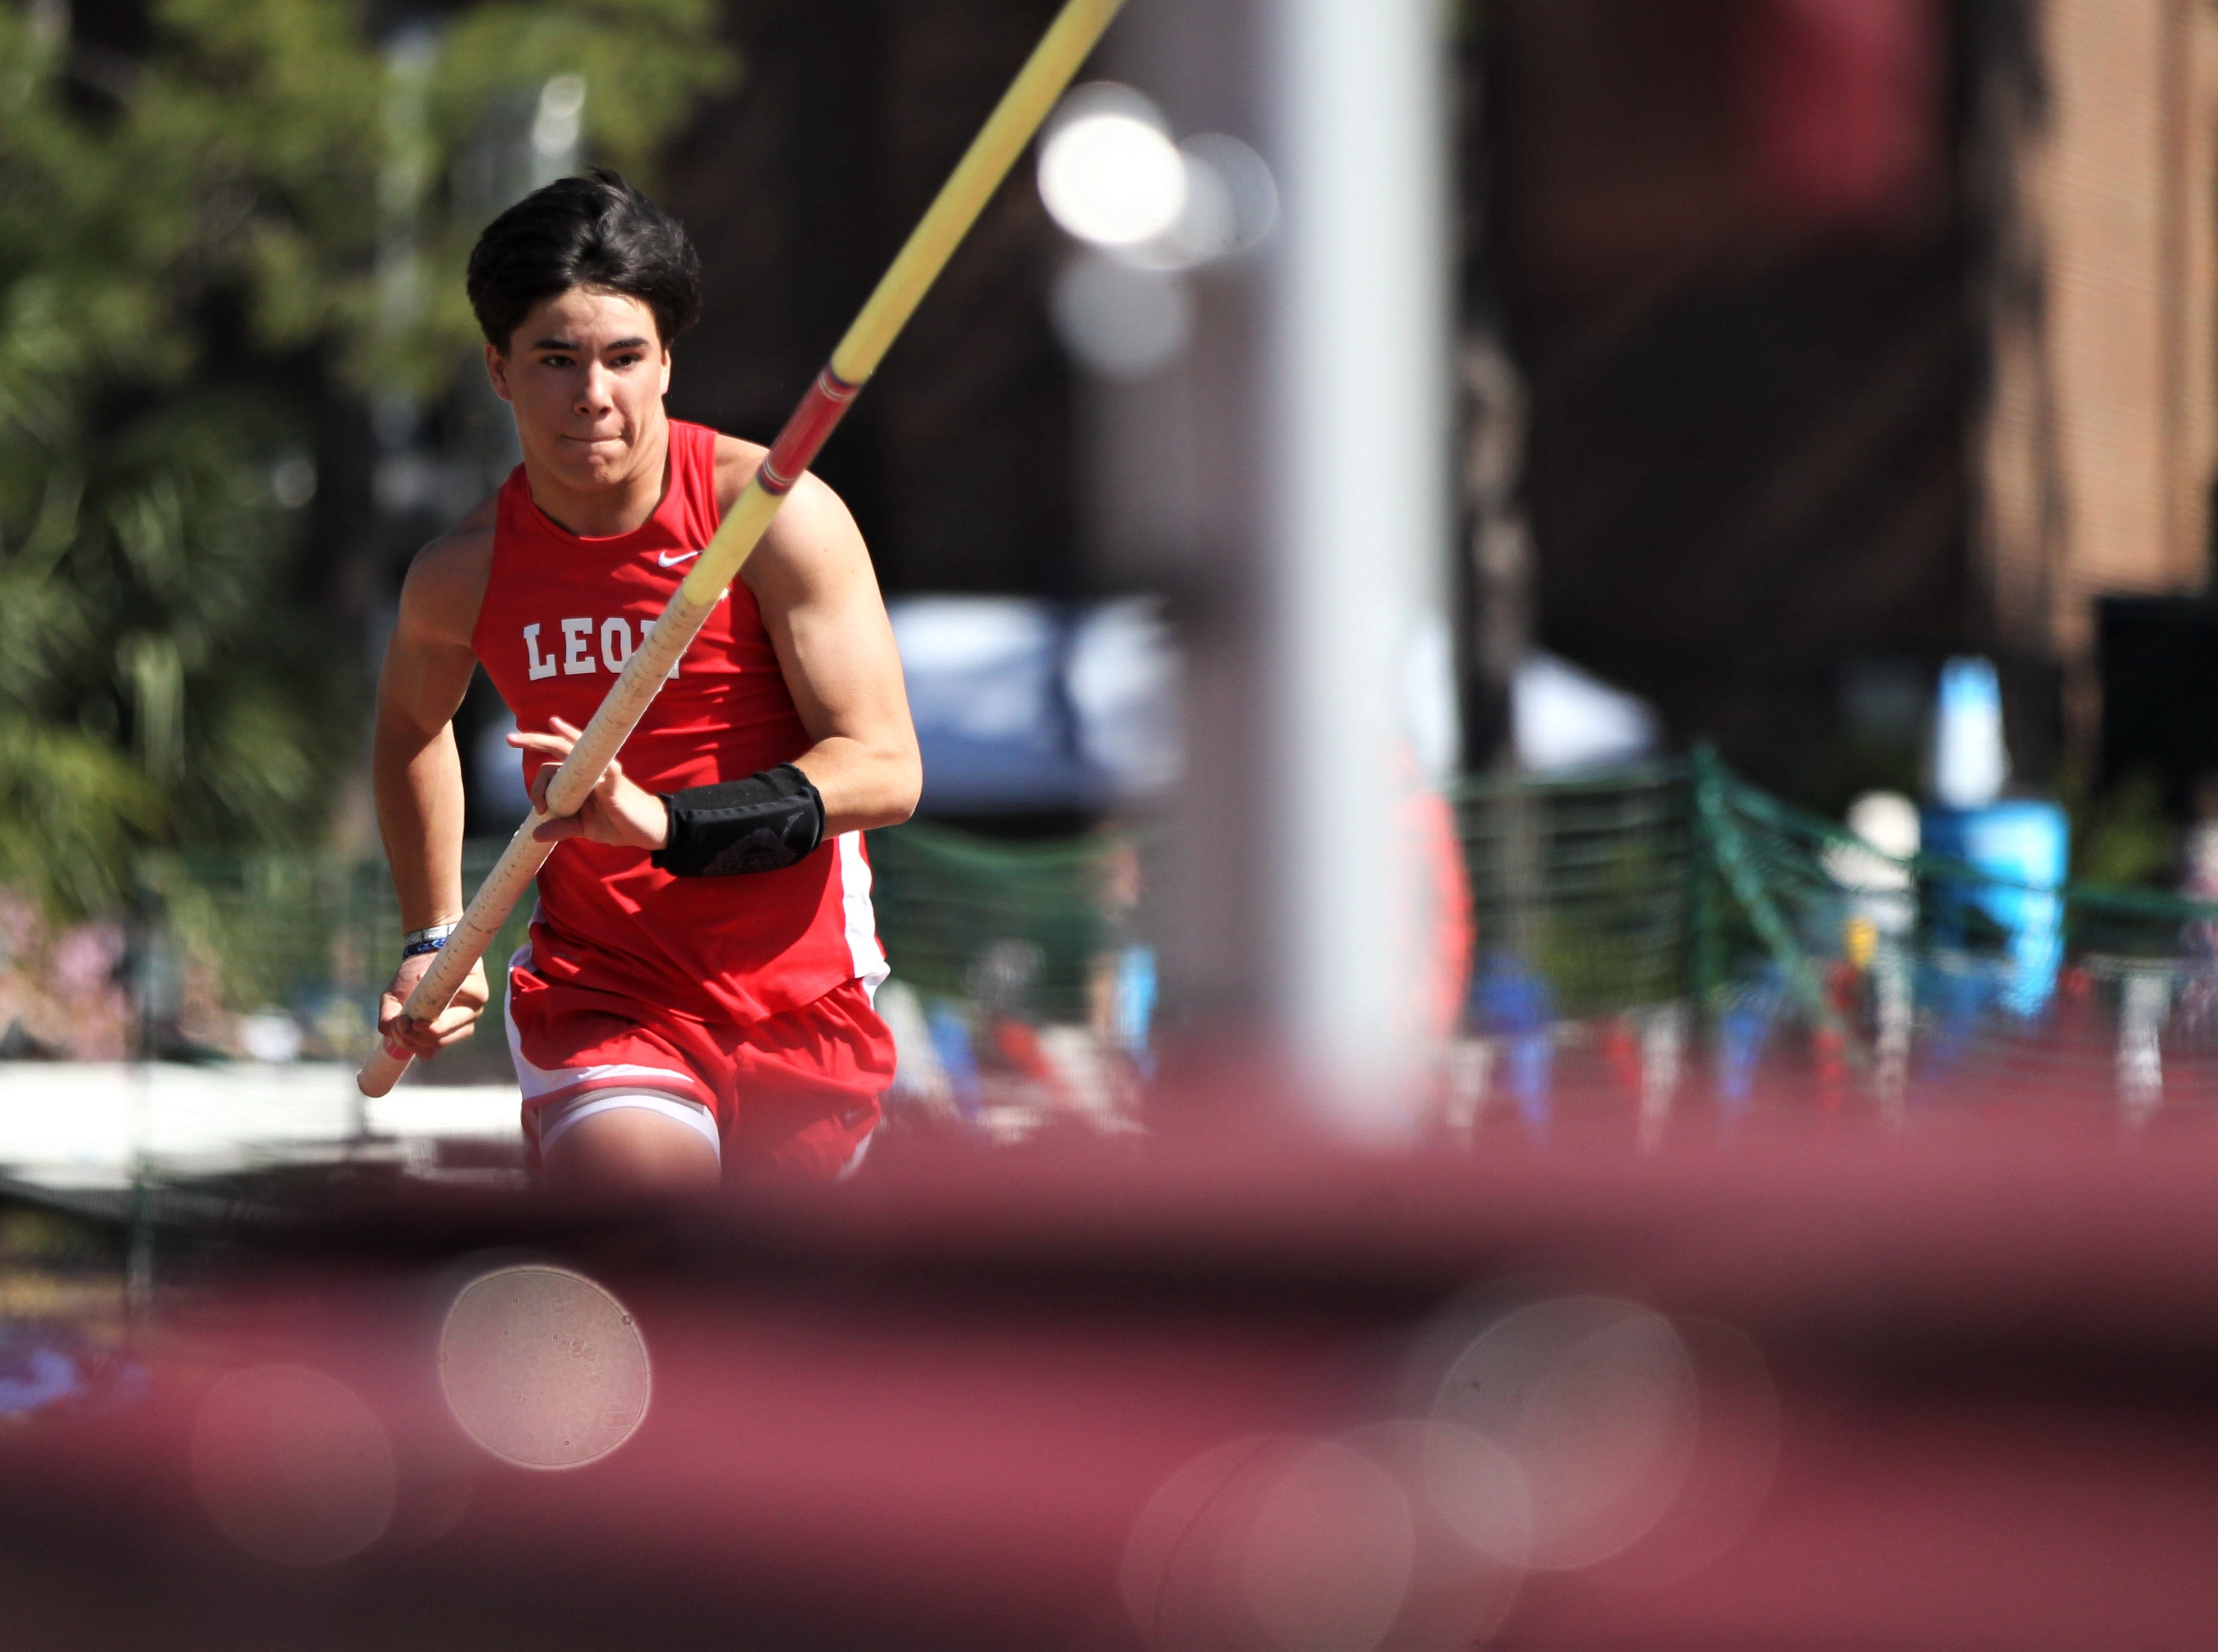 Leon senior Patrick Campo pole vaults during the 40th annual FSU Relays at Mike Long Track on Saturday, March 23, 2019.